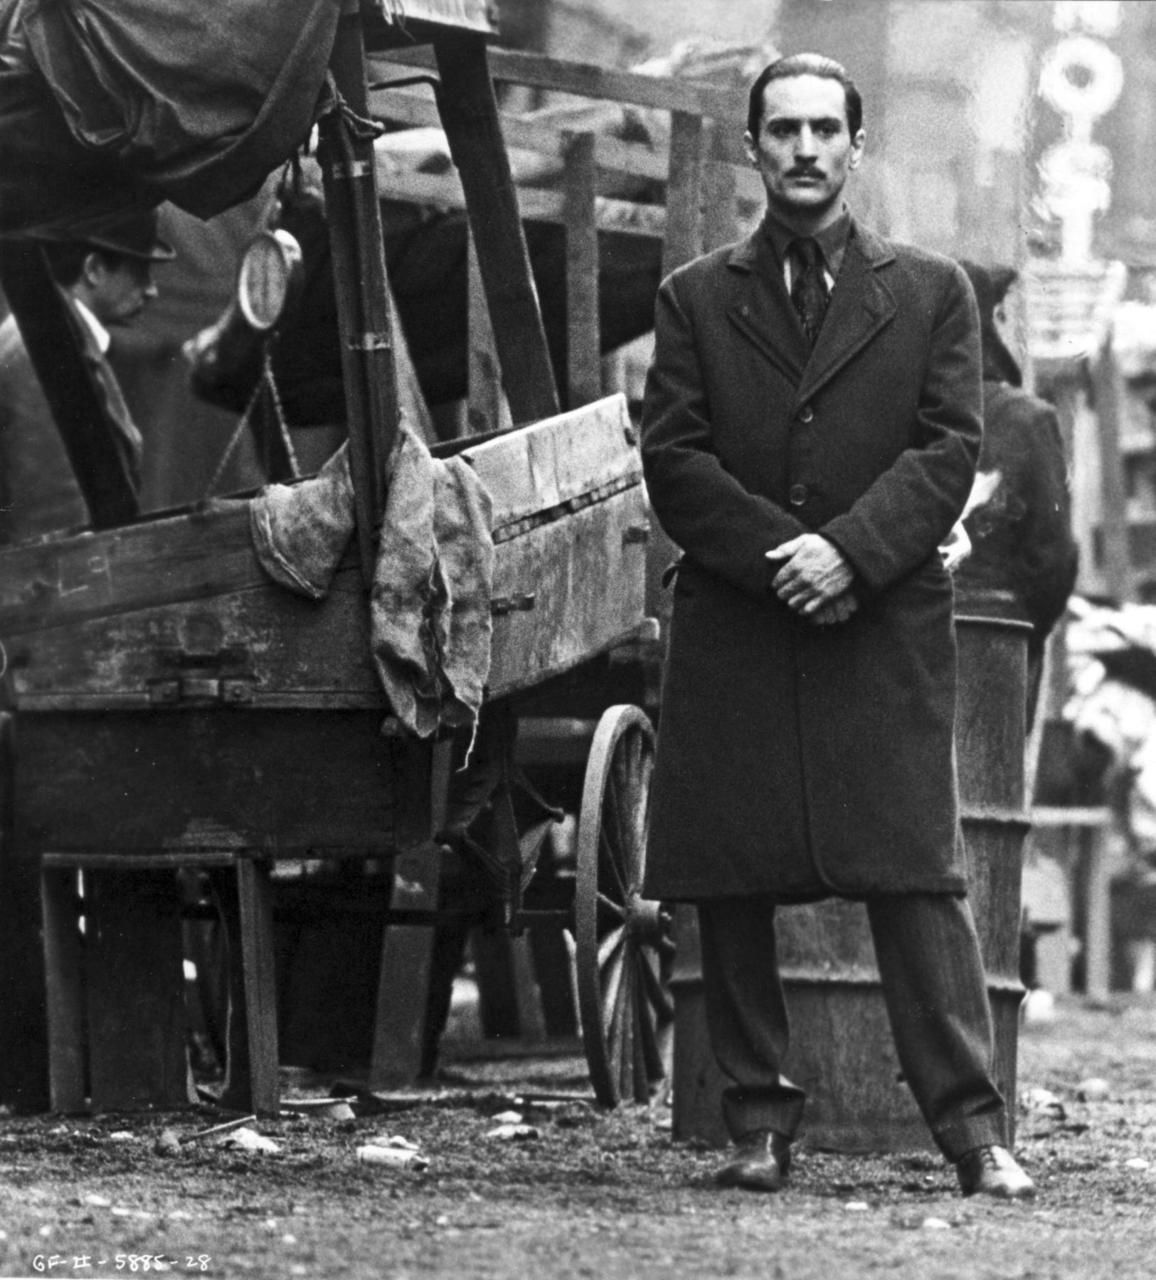 Robert De Niro in The Godfather II. One of the best performances ever! |  The godfather part ii, Godfather movie, The godfather